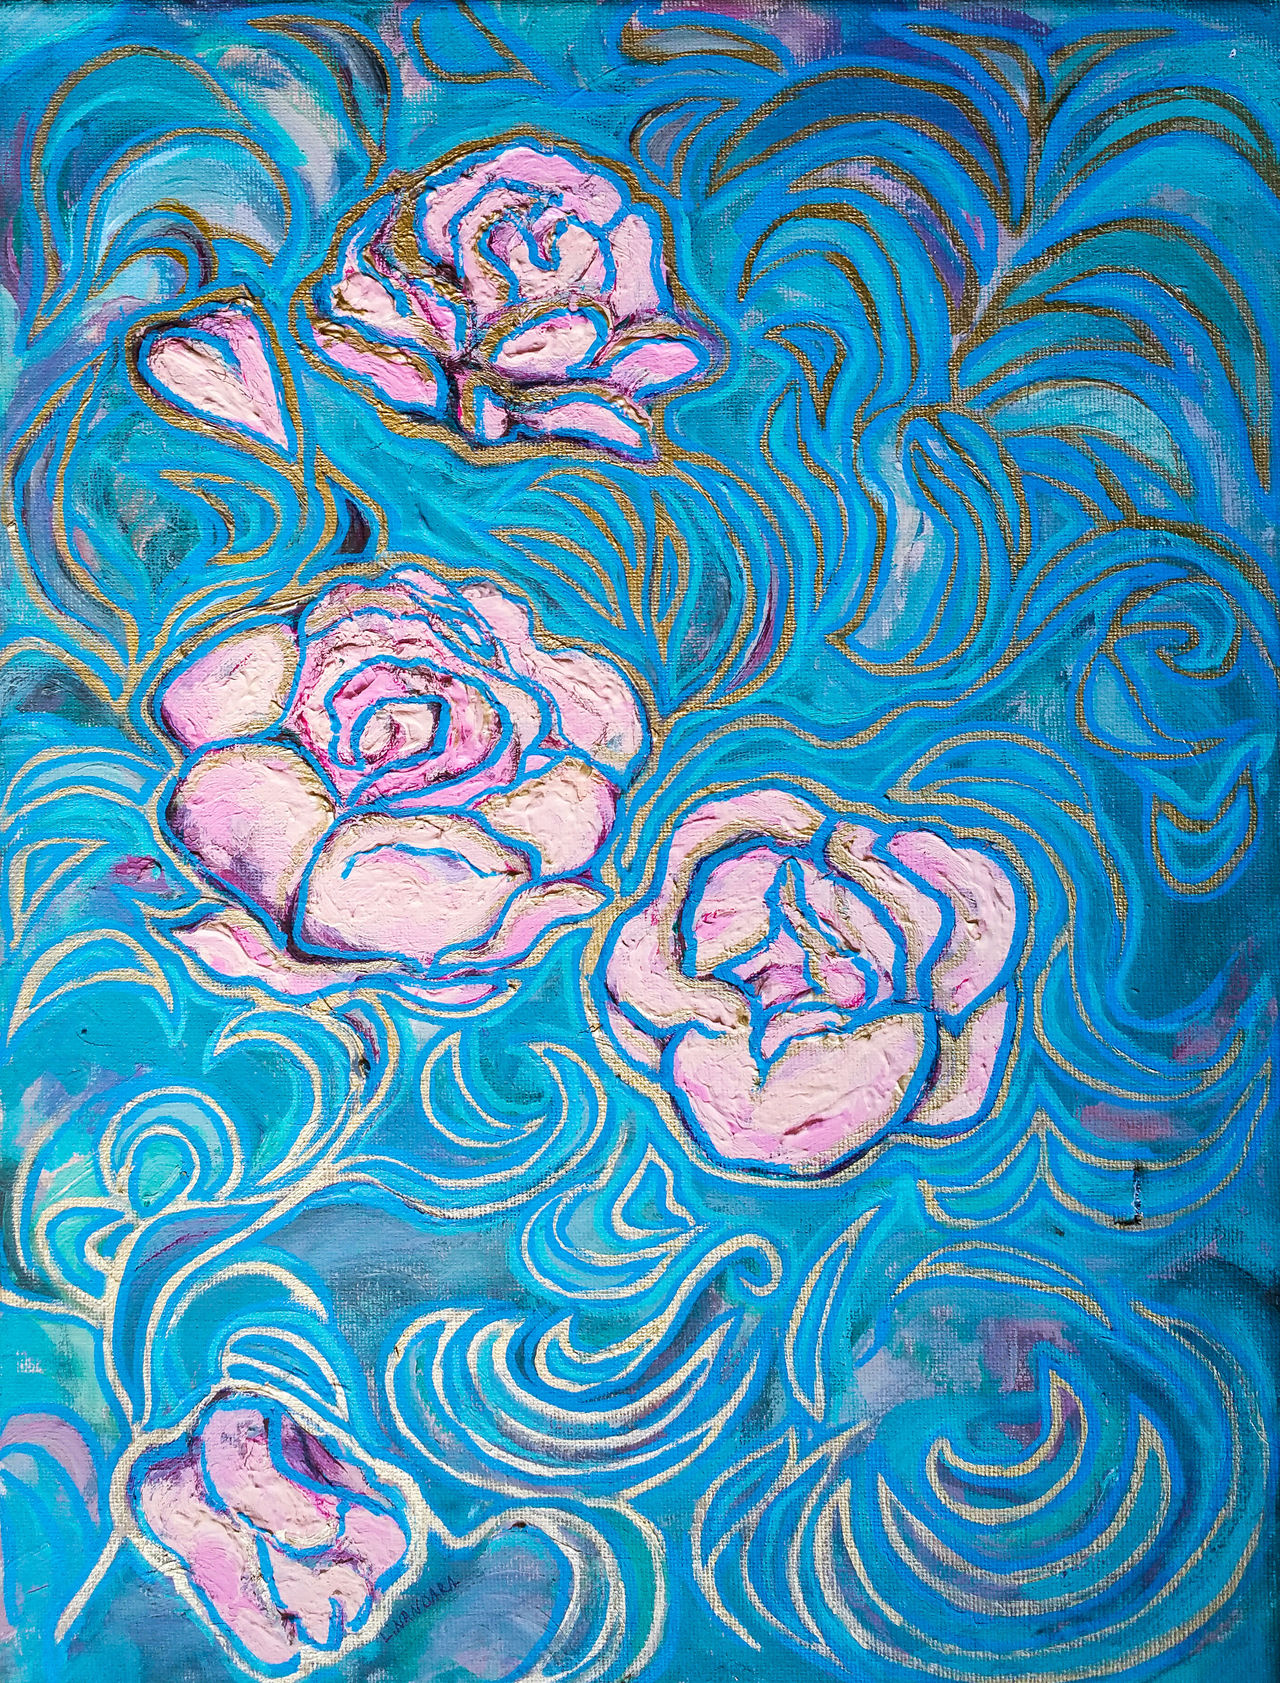 ... I set the purpose of my life to happiness and flourishing. .. Blue Art And Craft Drawing - Art Product Pattern Ink Abstract Drawing - Activity Skill  Backgrounds Close-up No People Day Acrylic Painting Roses Leaves Pink Color Tourquise Gold My Art My Artwork Stylized ArtWork Art Canvas